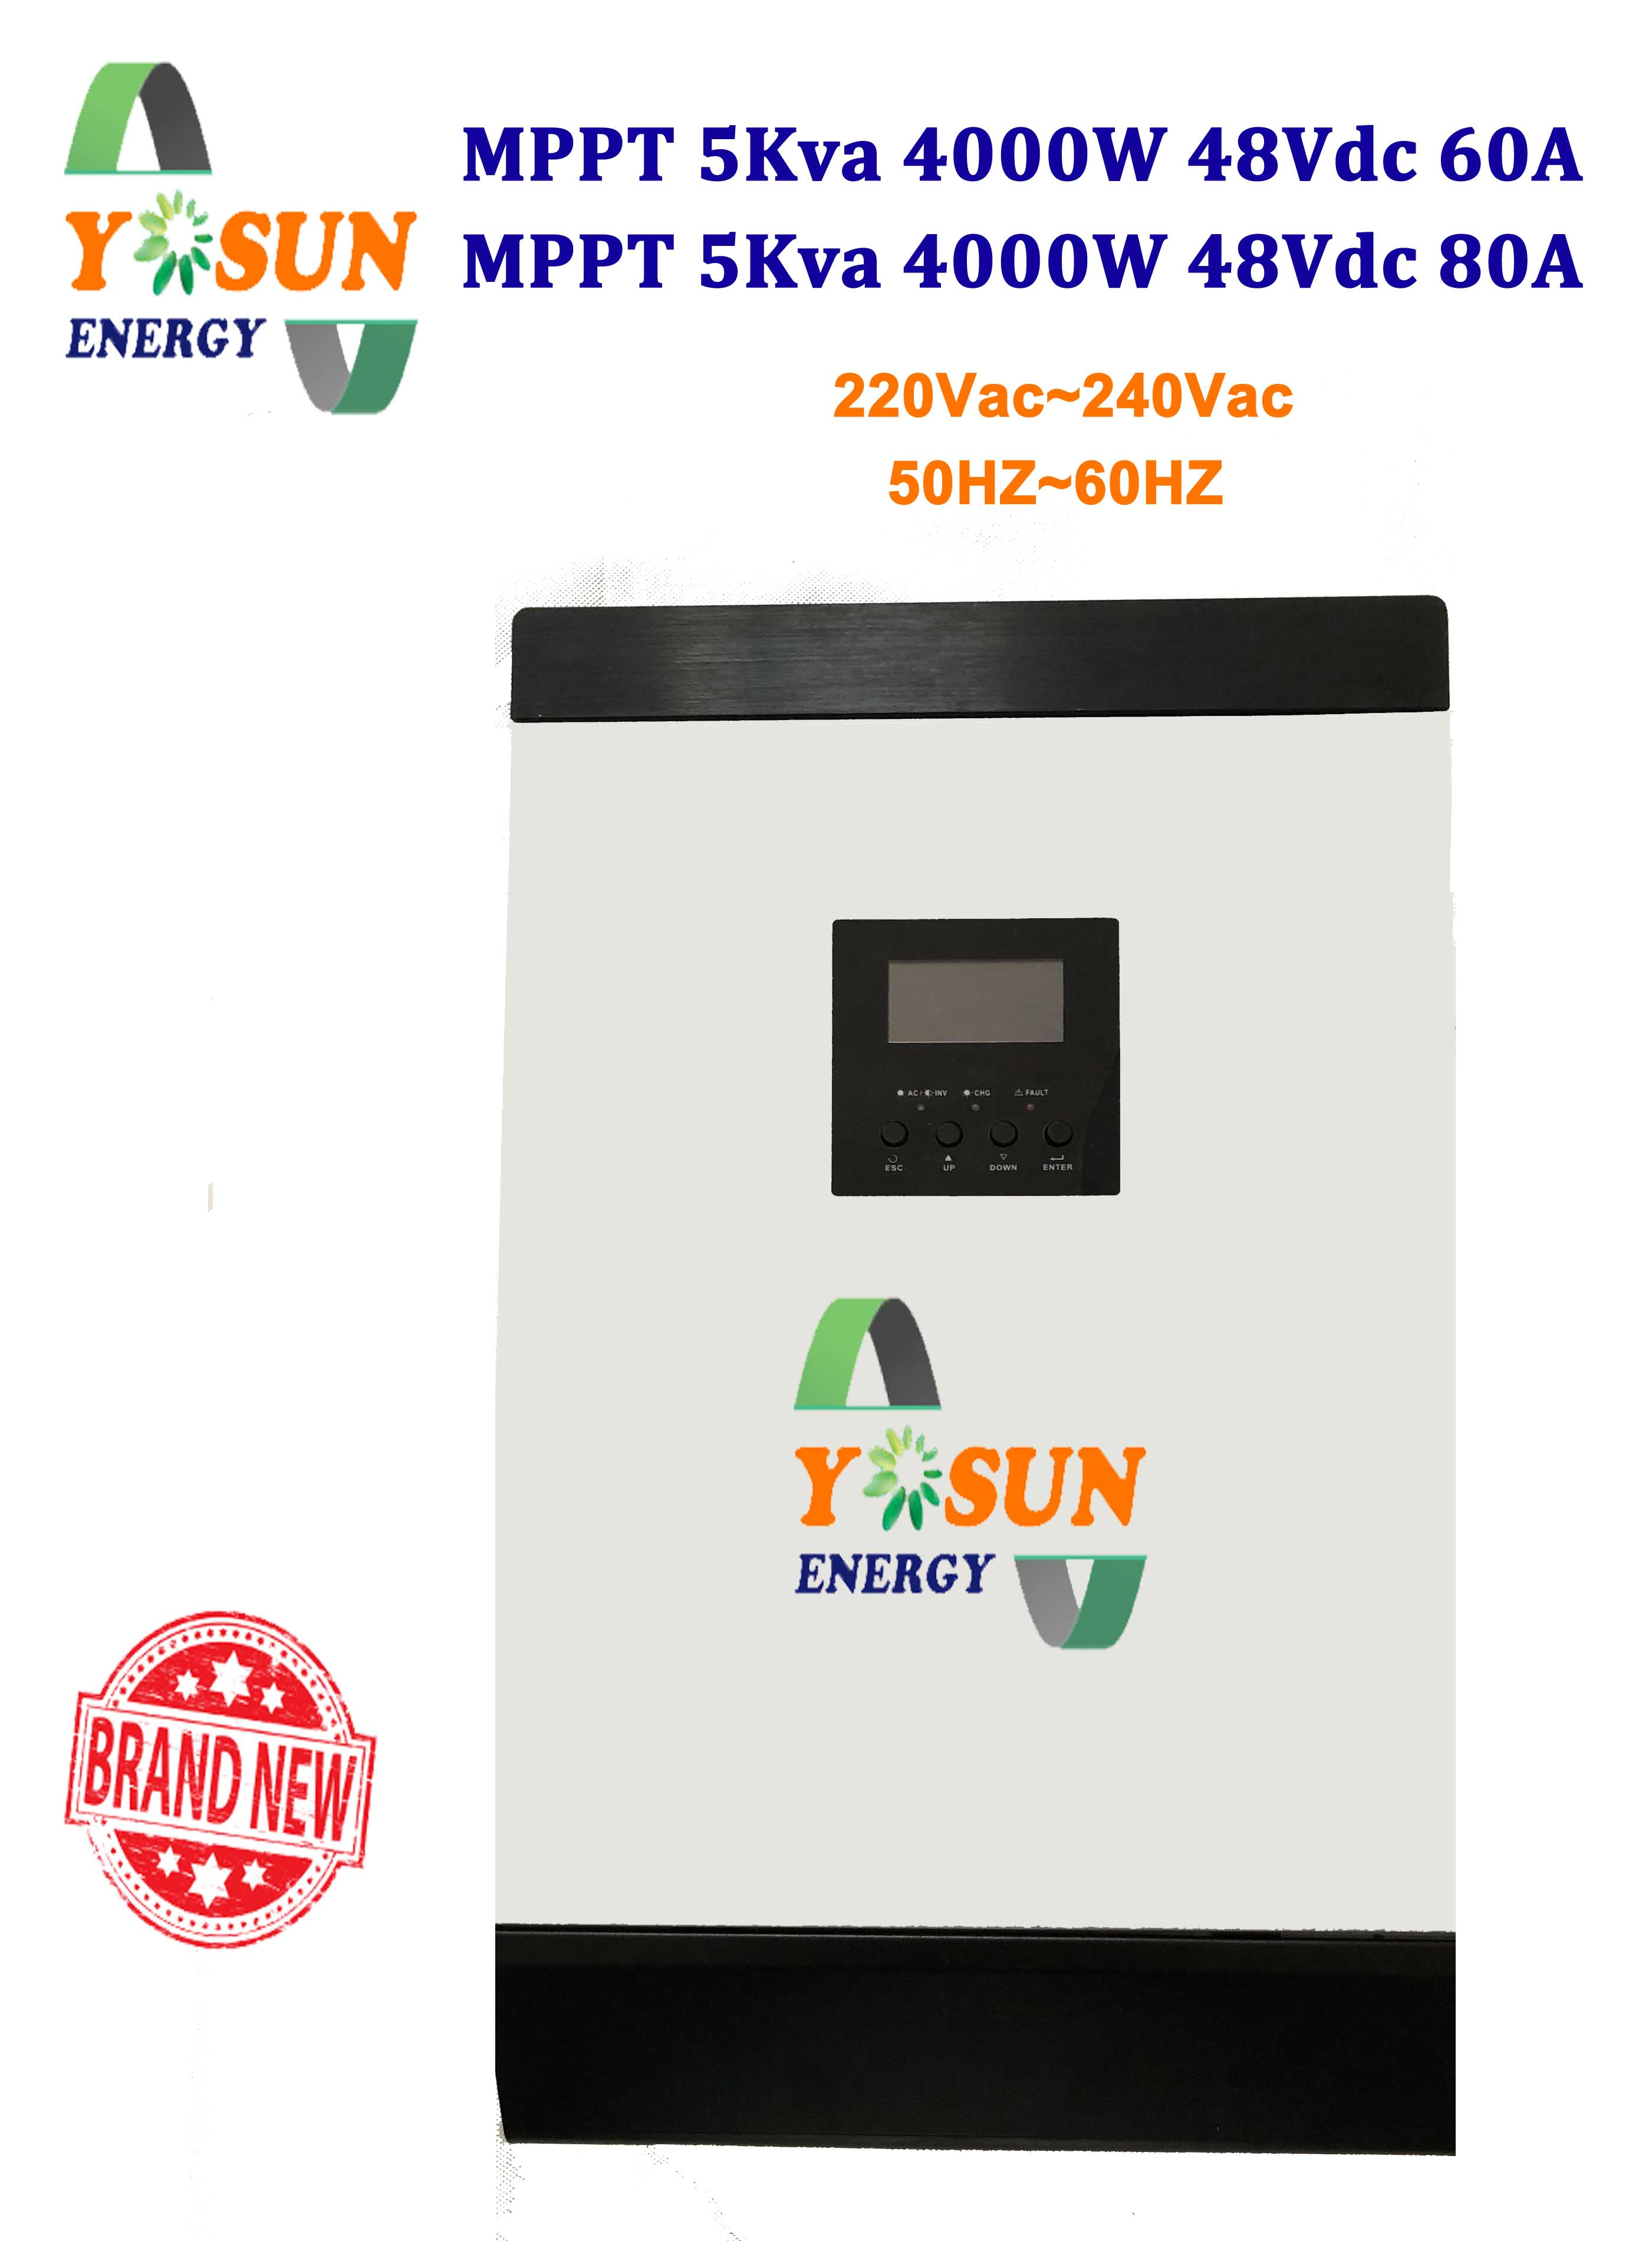 5kva Solar Inverter 4000w Mppt Pure Sine Wave 60a Or 80a Wavedc Sign Wavesine Diagrampwm Inverterpure Ac Charge